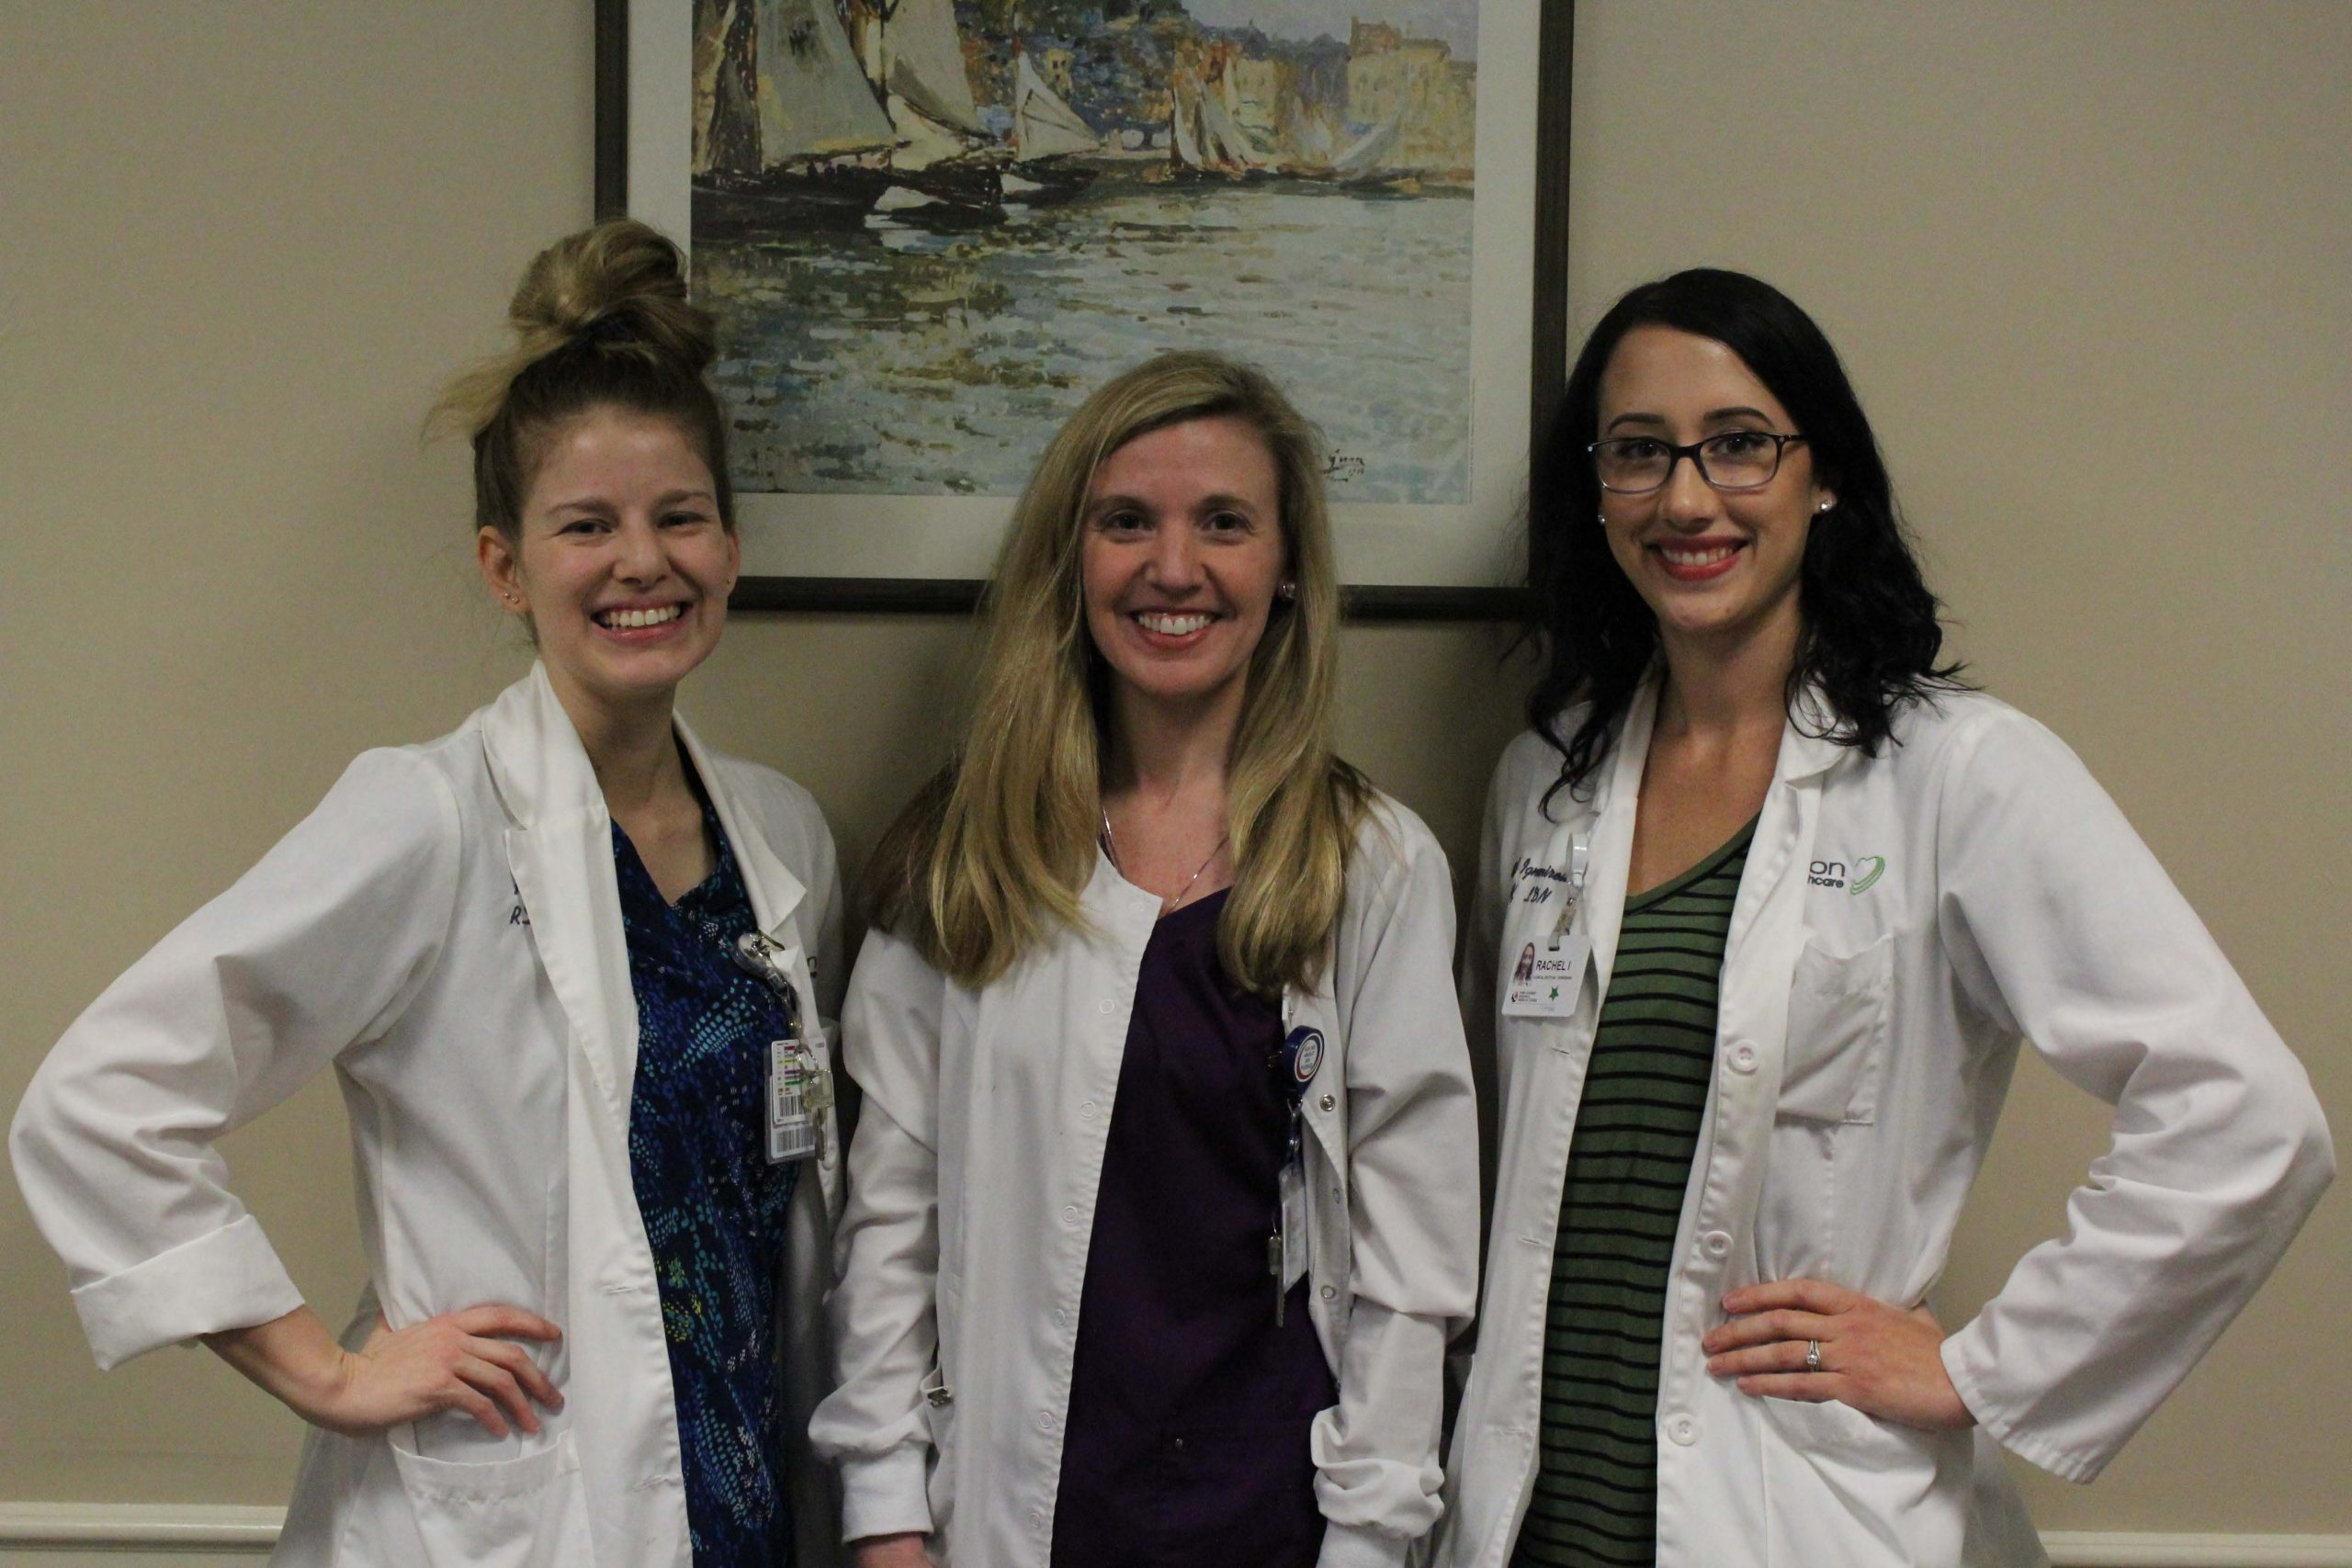 Fort Sanders Regional Medical Center Dietitians Reflect on National Nutrition Month